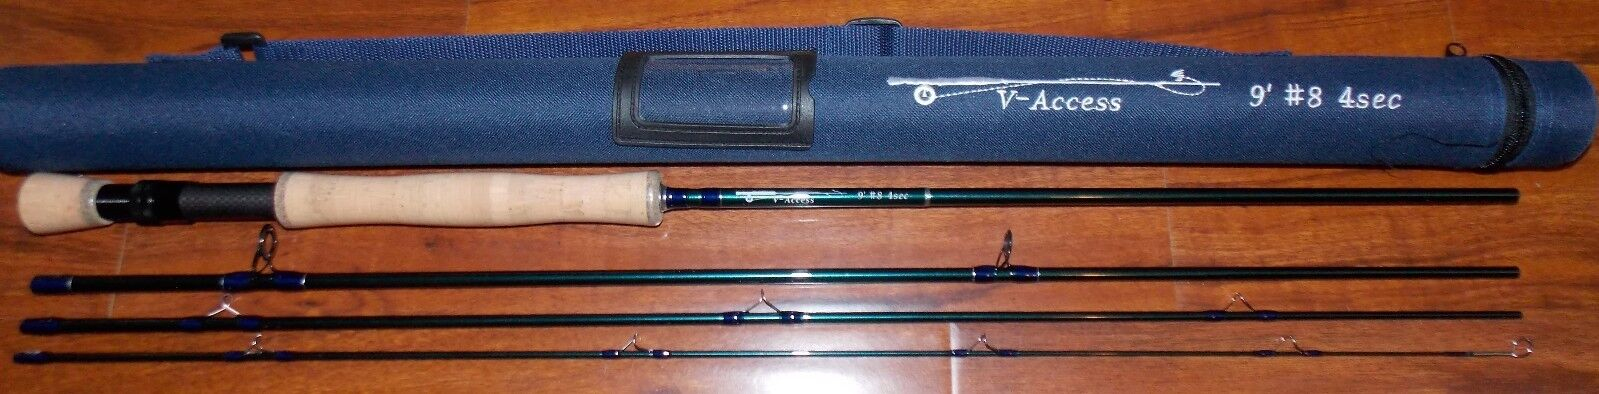 8 WT V-Access  Fliegen Fishing Rod   9 Foot  4 Sec. with Tube  FREE 3 DAY SHIPPING